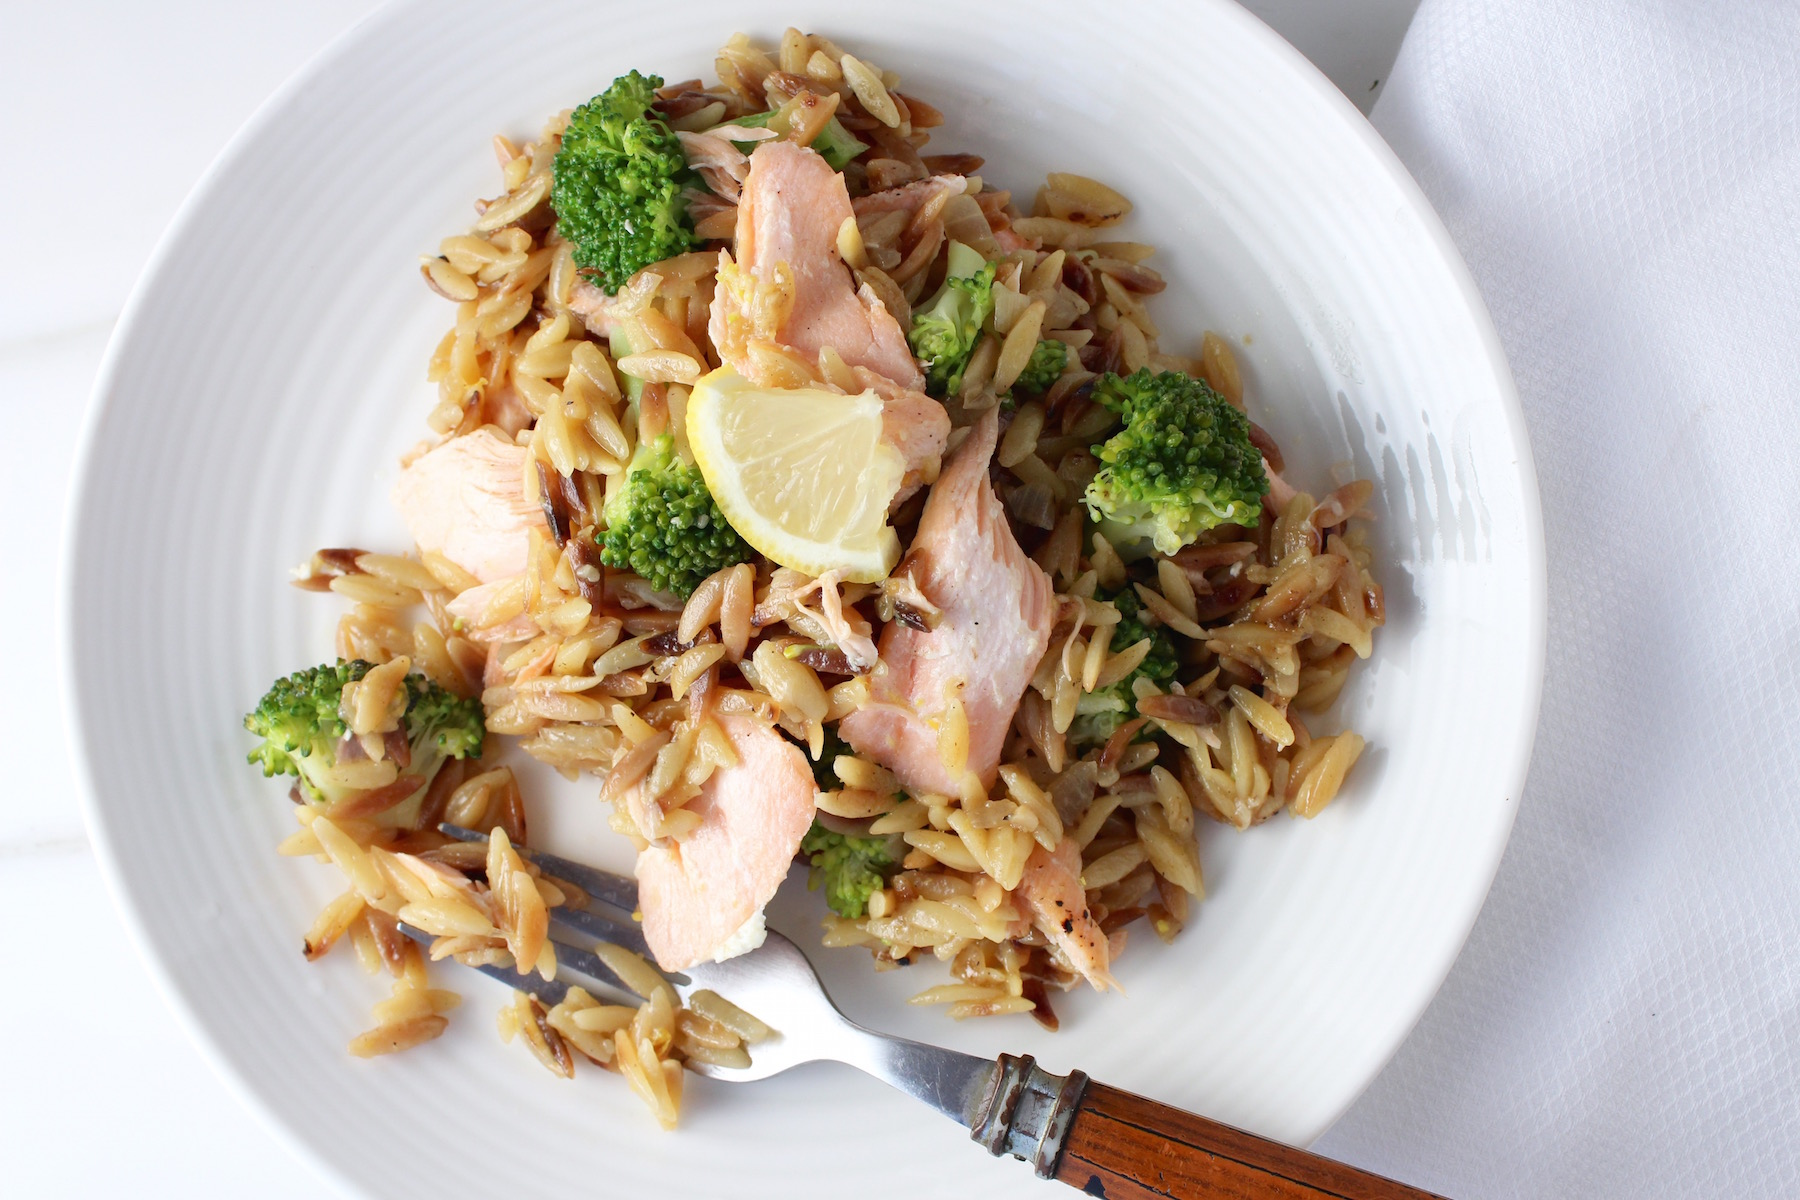 Orzo with Broccoli and Salmon